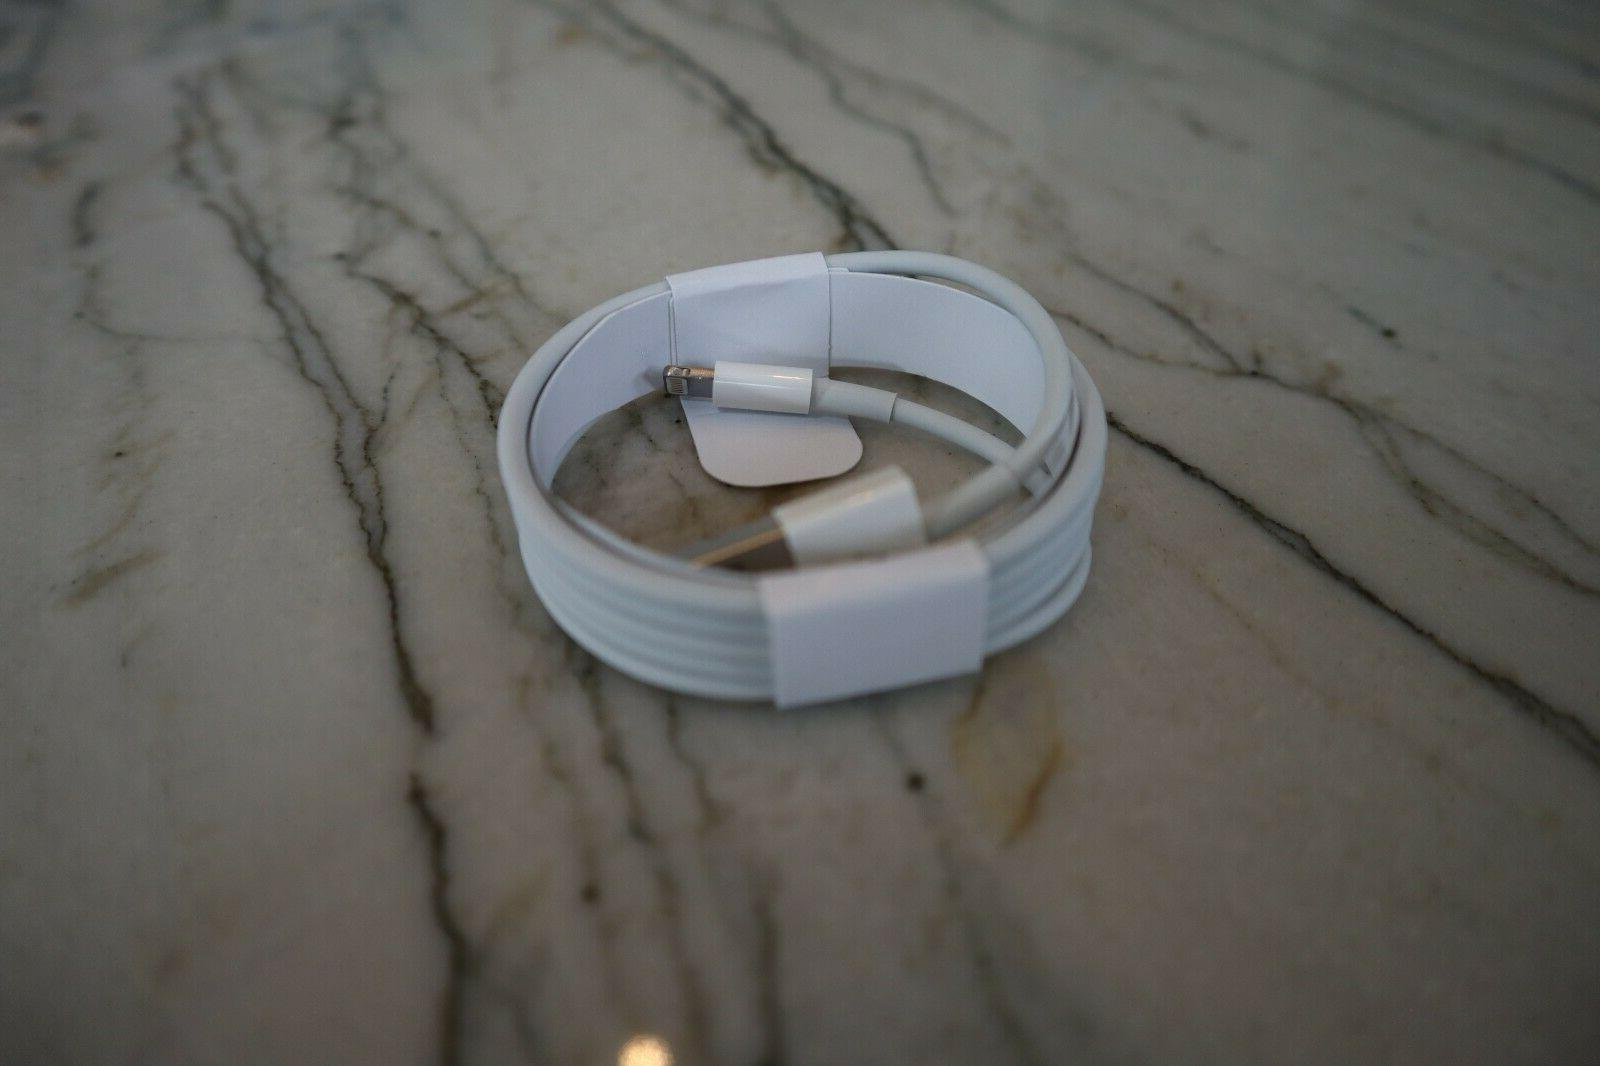 Genuine Original OEM iPhone 8 USB Cable Charger